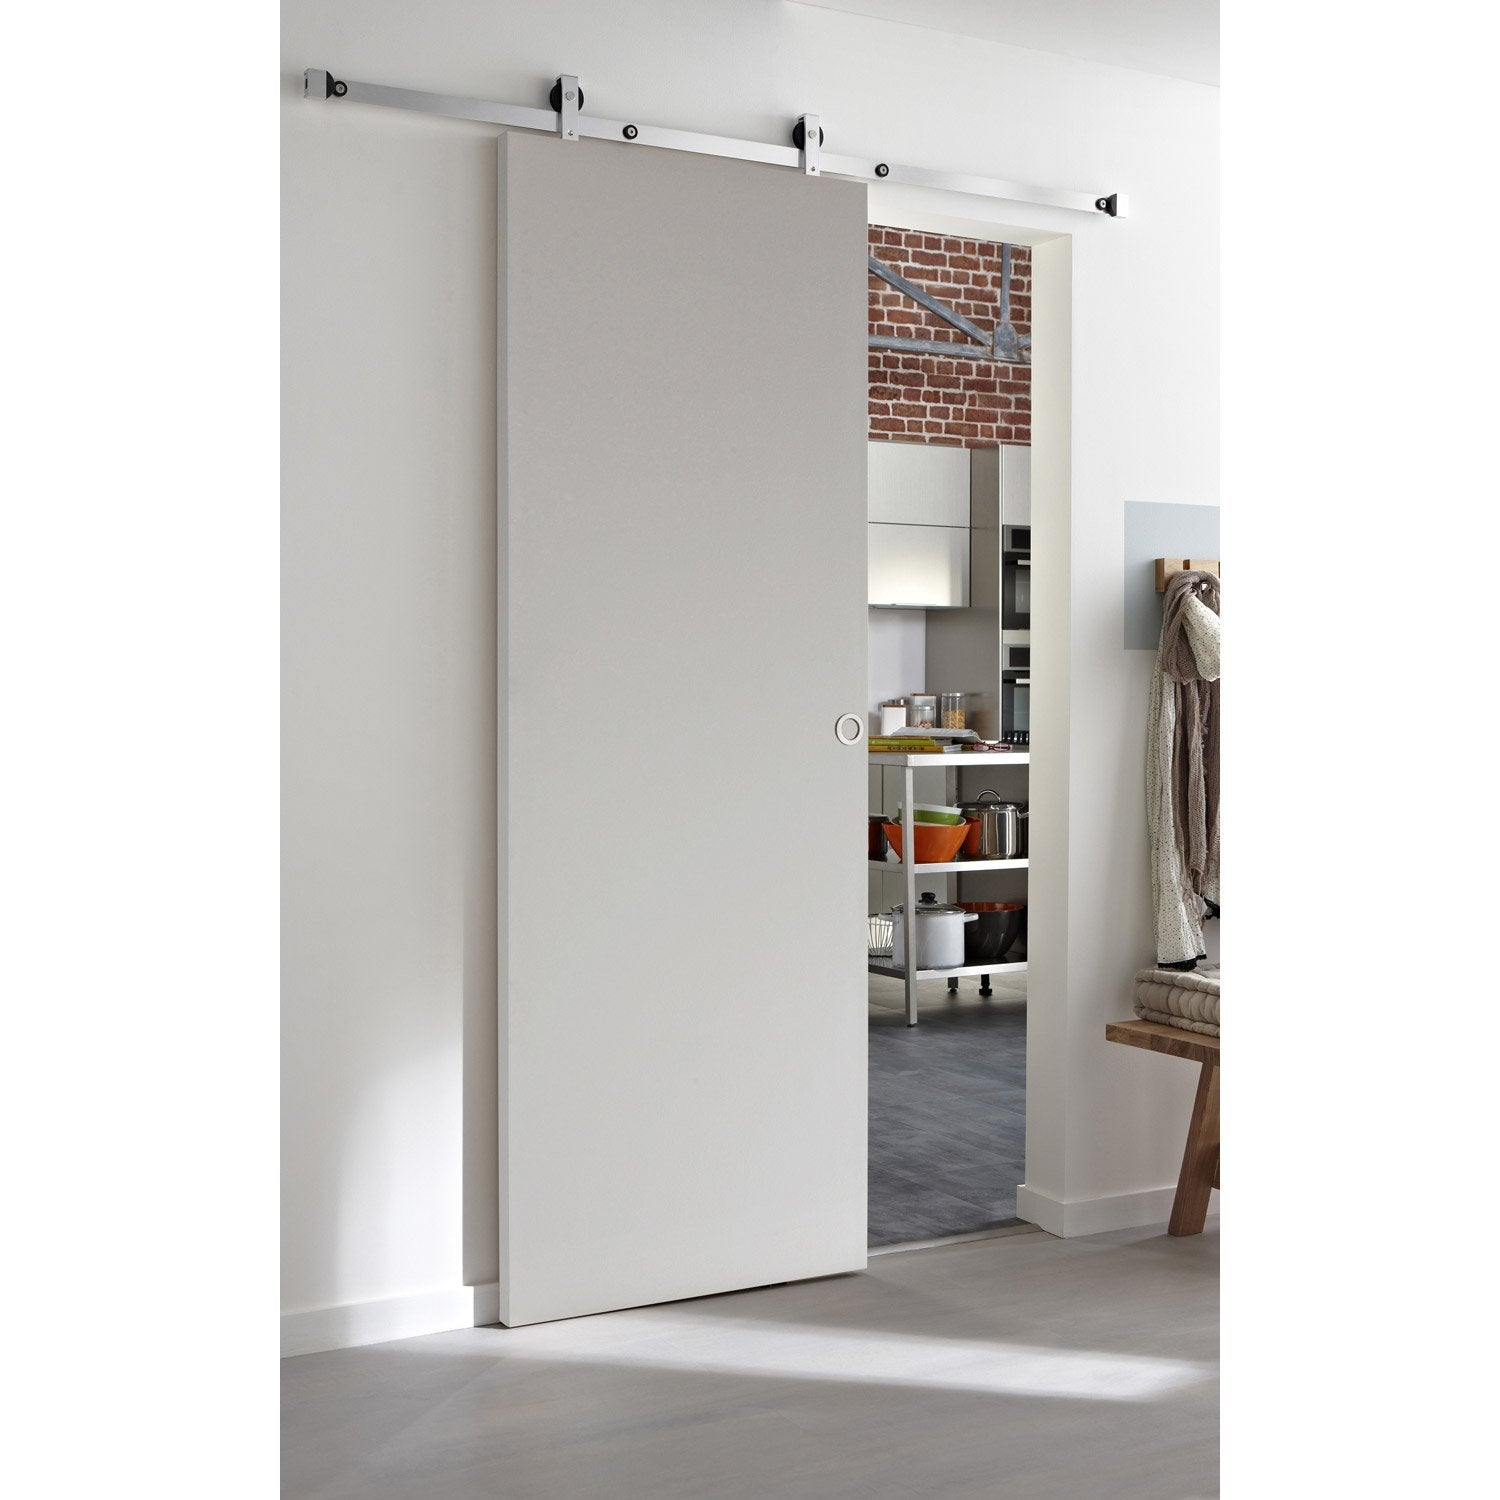 Ensemble porte coulissante isoplane avec le rail modern bois en aluminium l - Collection inspire leroy merlin ...